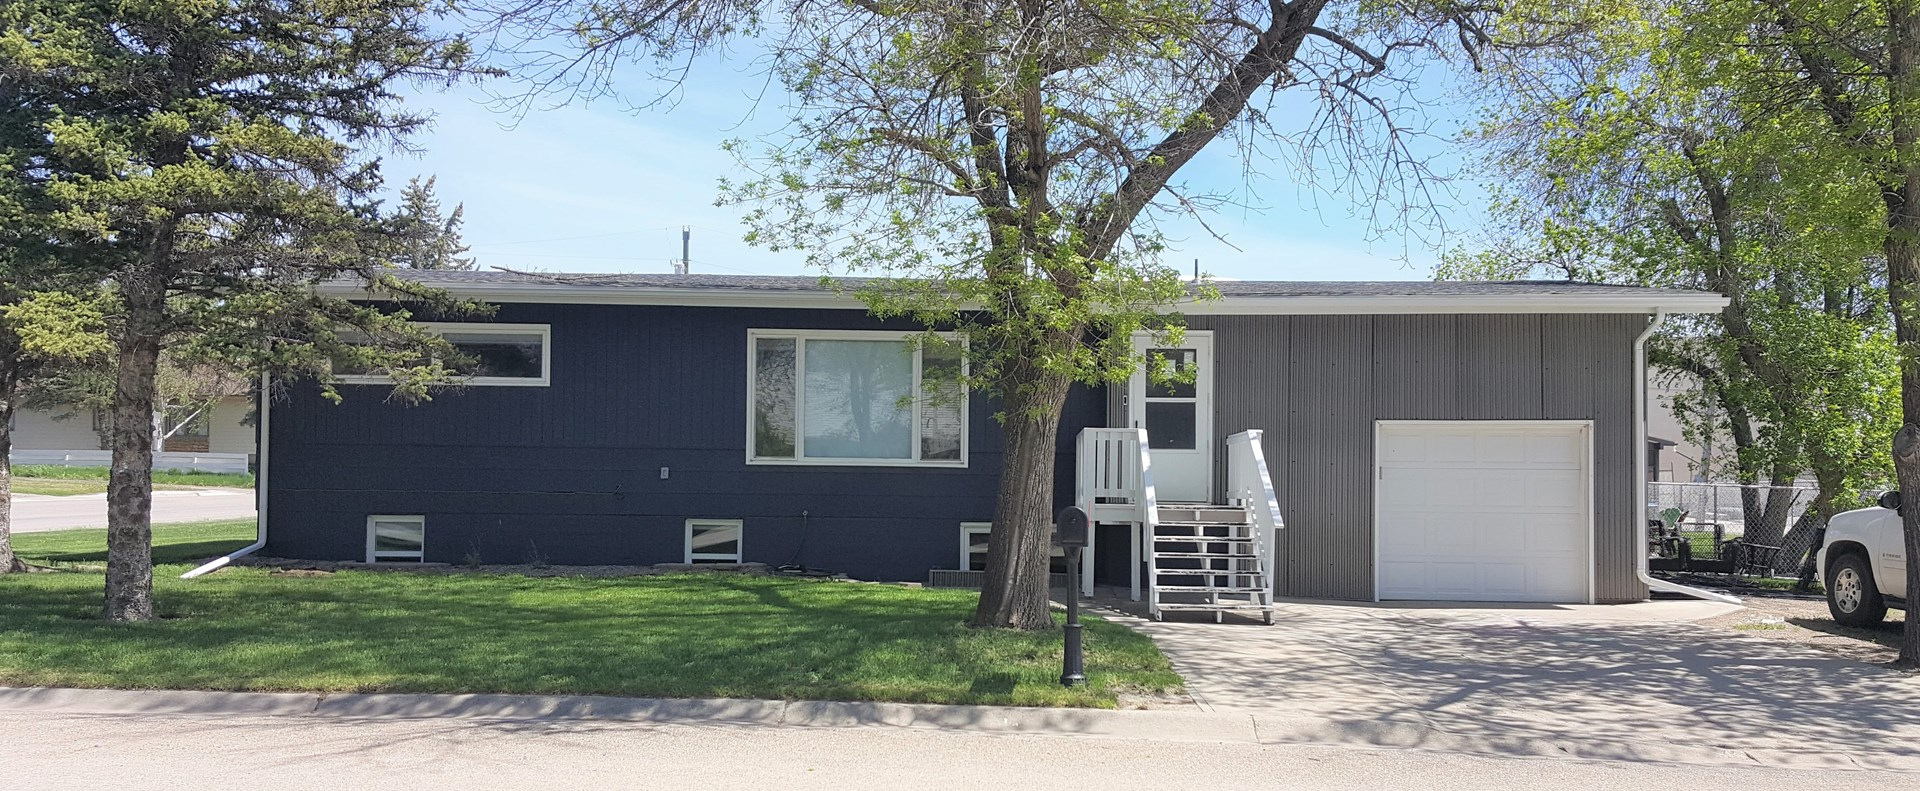 Spacious Home/4 bed 3 bath/Shelby MT/$244,900